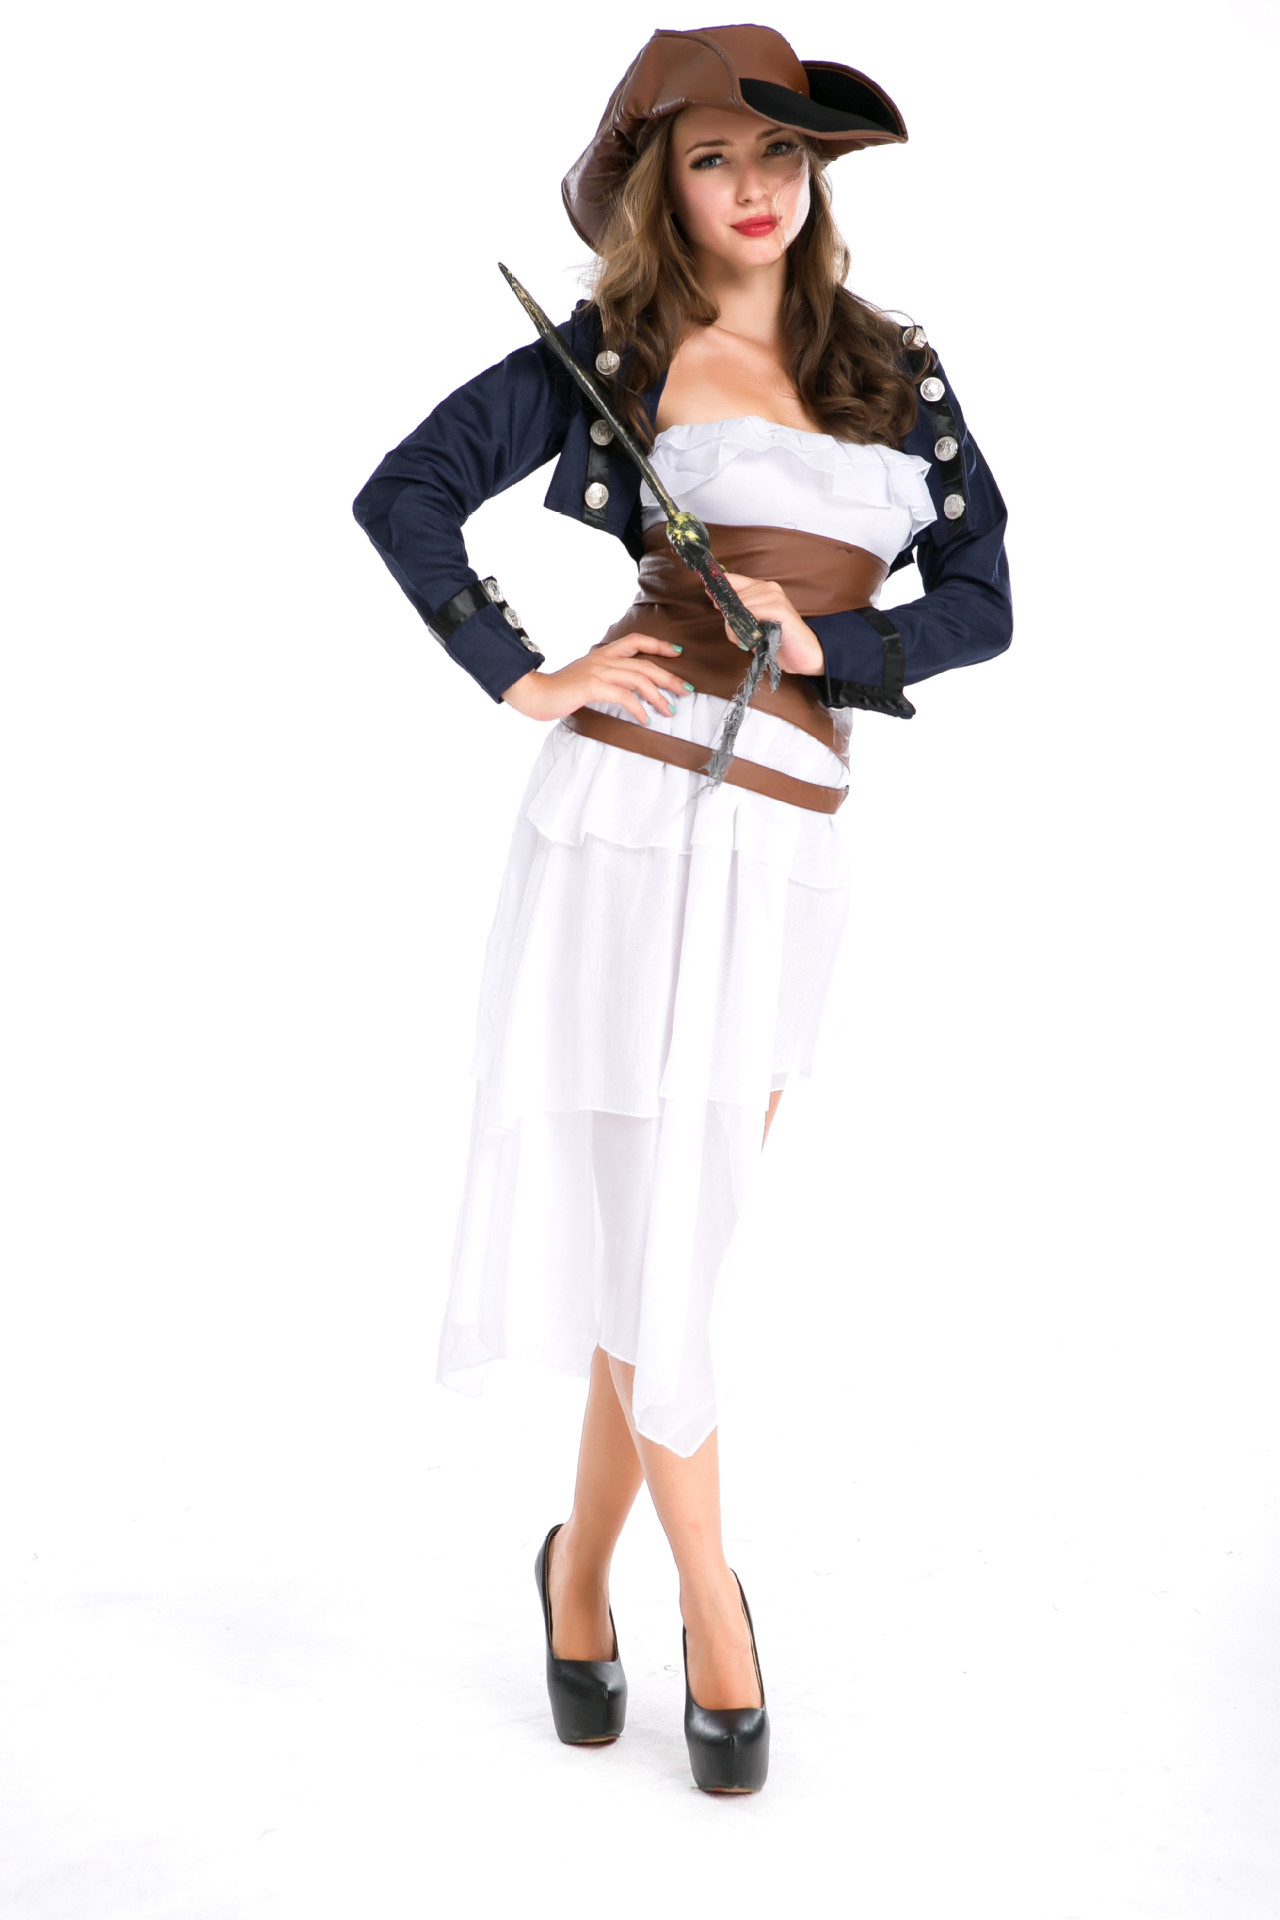 Compare Prices on Pirates Suit- Online Shopping/Buy Low Price ...